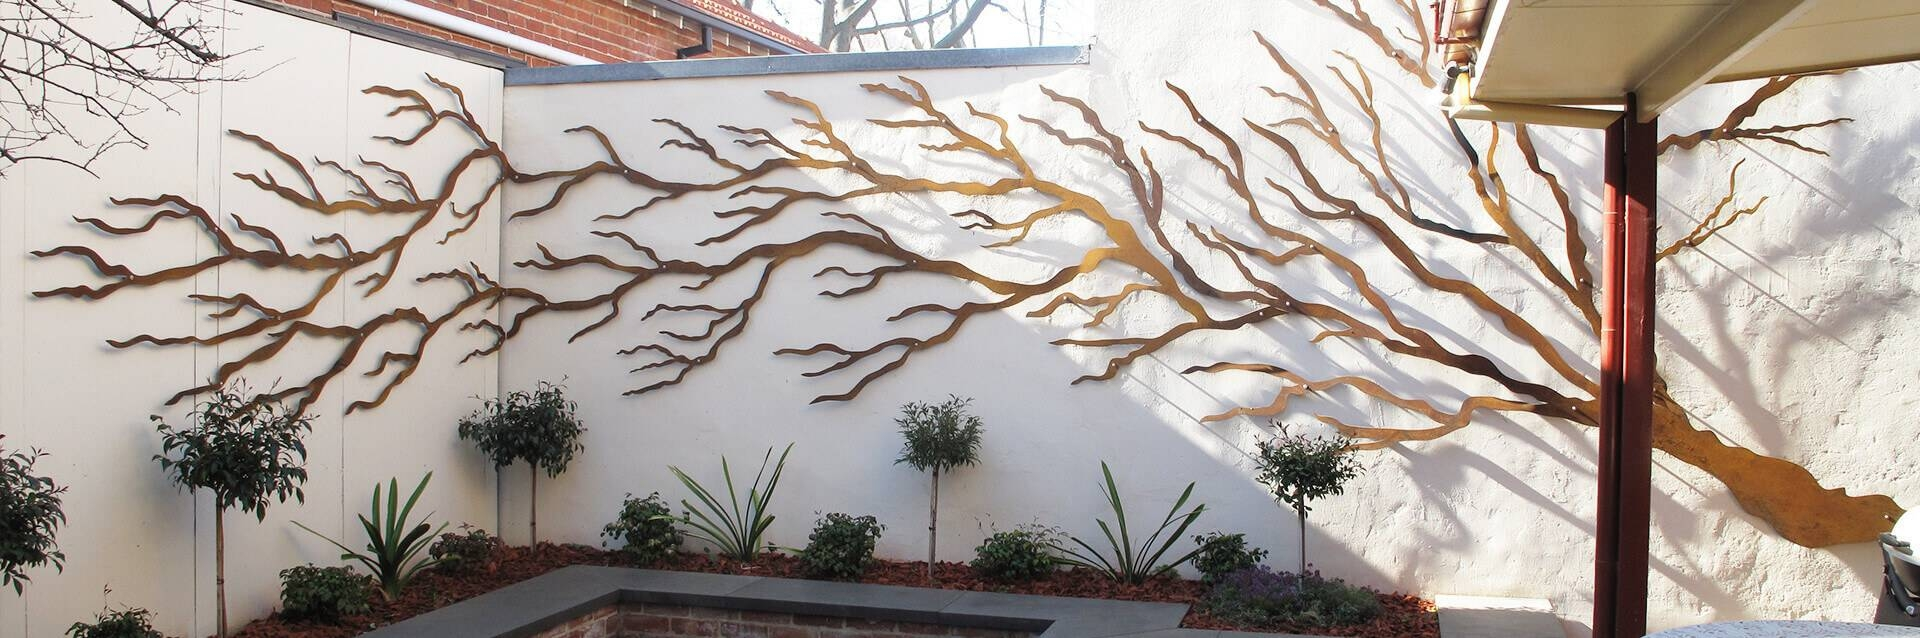 Garden Wall Art Australia | Home Outdoor Decoration Within Most Current Garden Wall Art (Gallery 25 of 30)